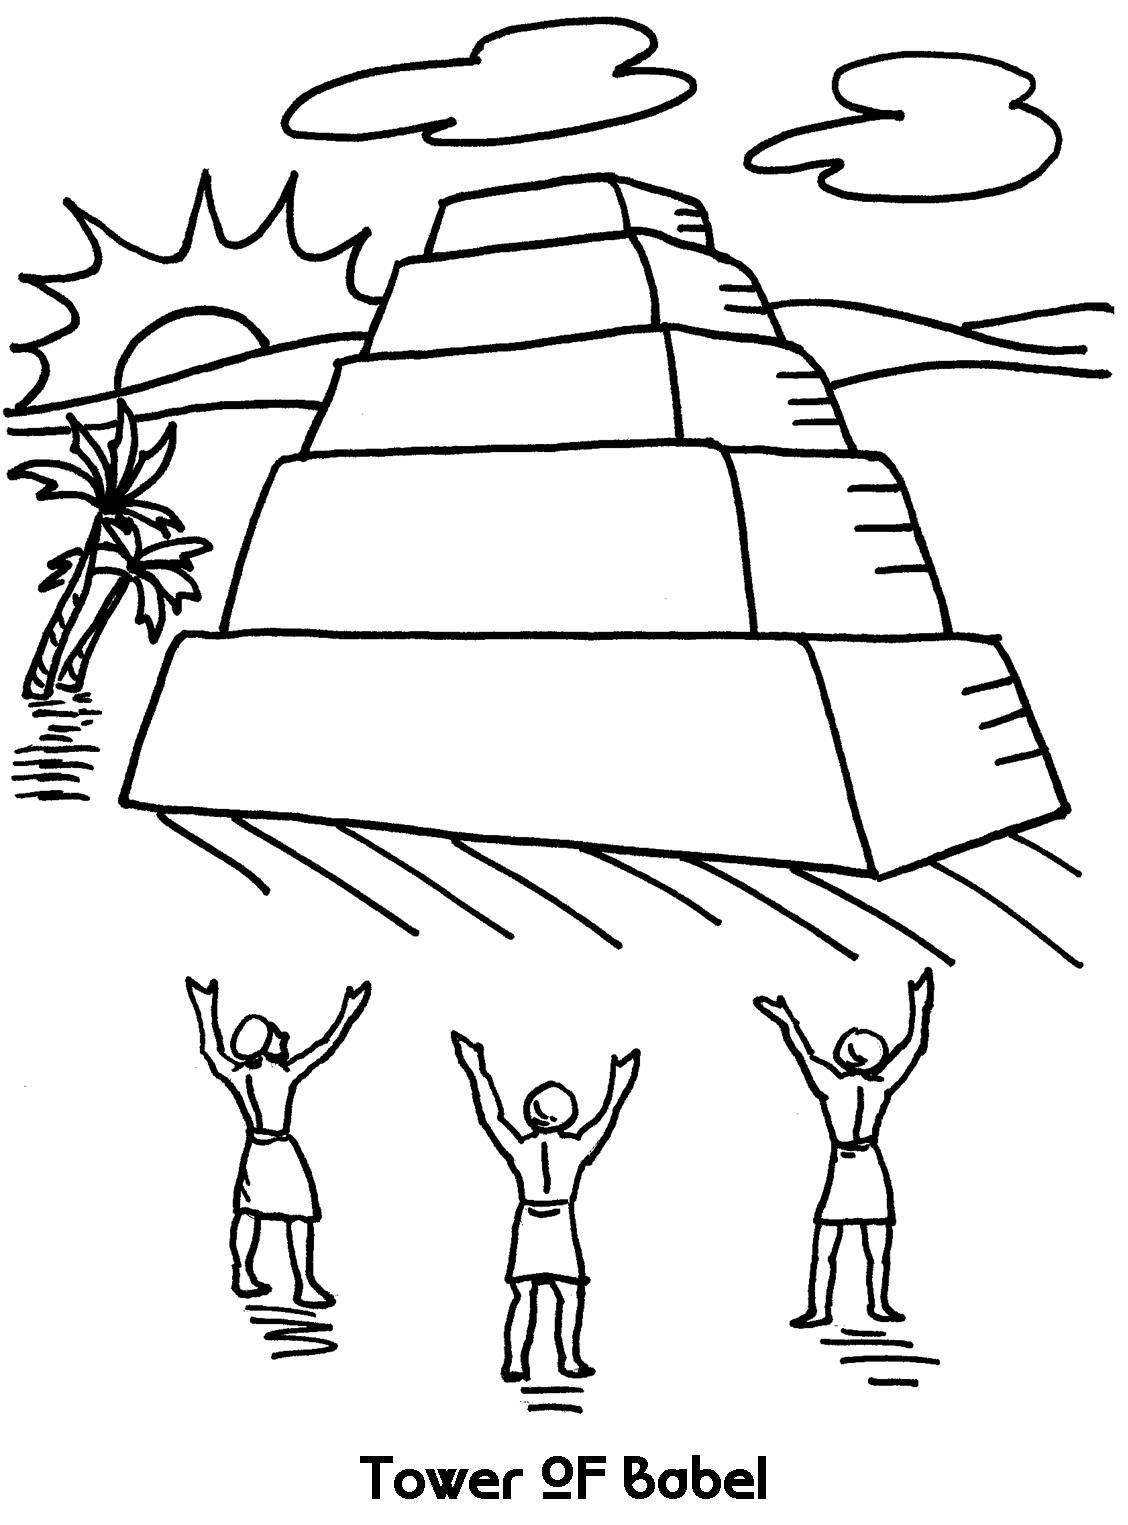 tower of babel coloring pages for kids tower of babel coloring lesson kids coloring page kids babel tower coloring pages for of